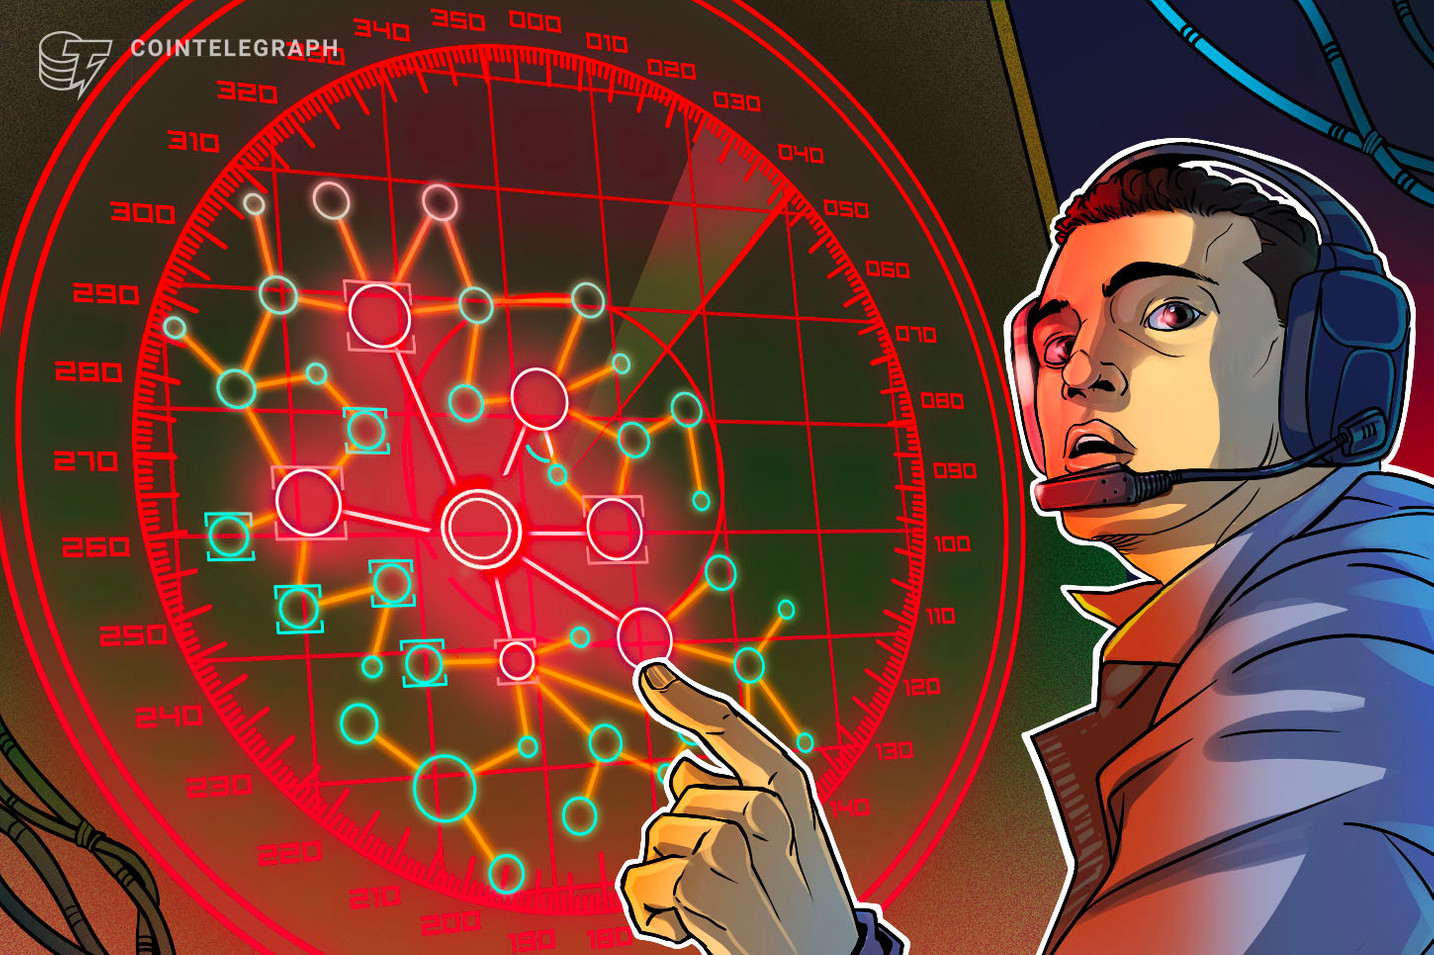 800K BitBay exchange users face 2nd unscheduled outage this year